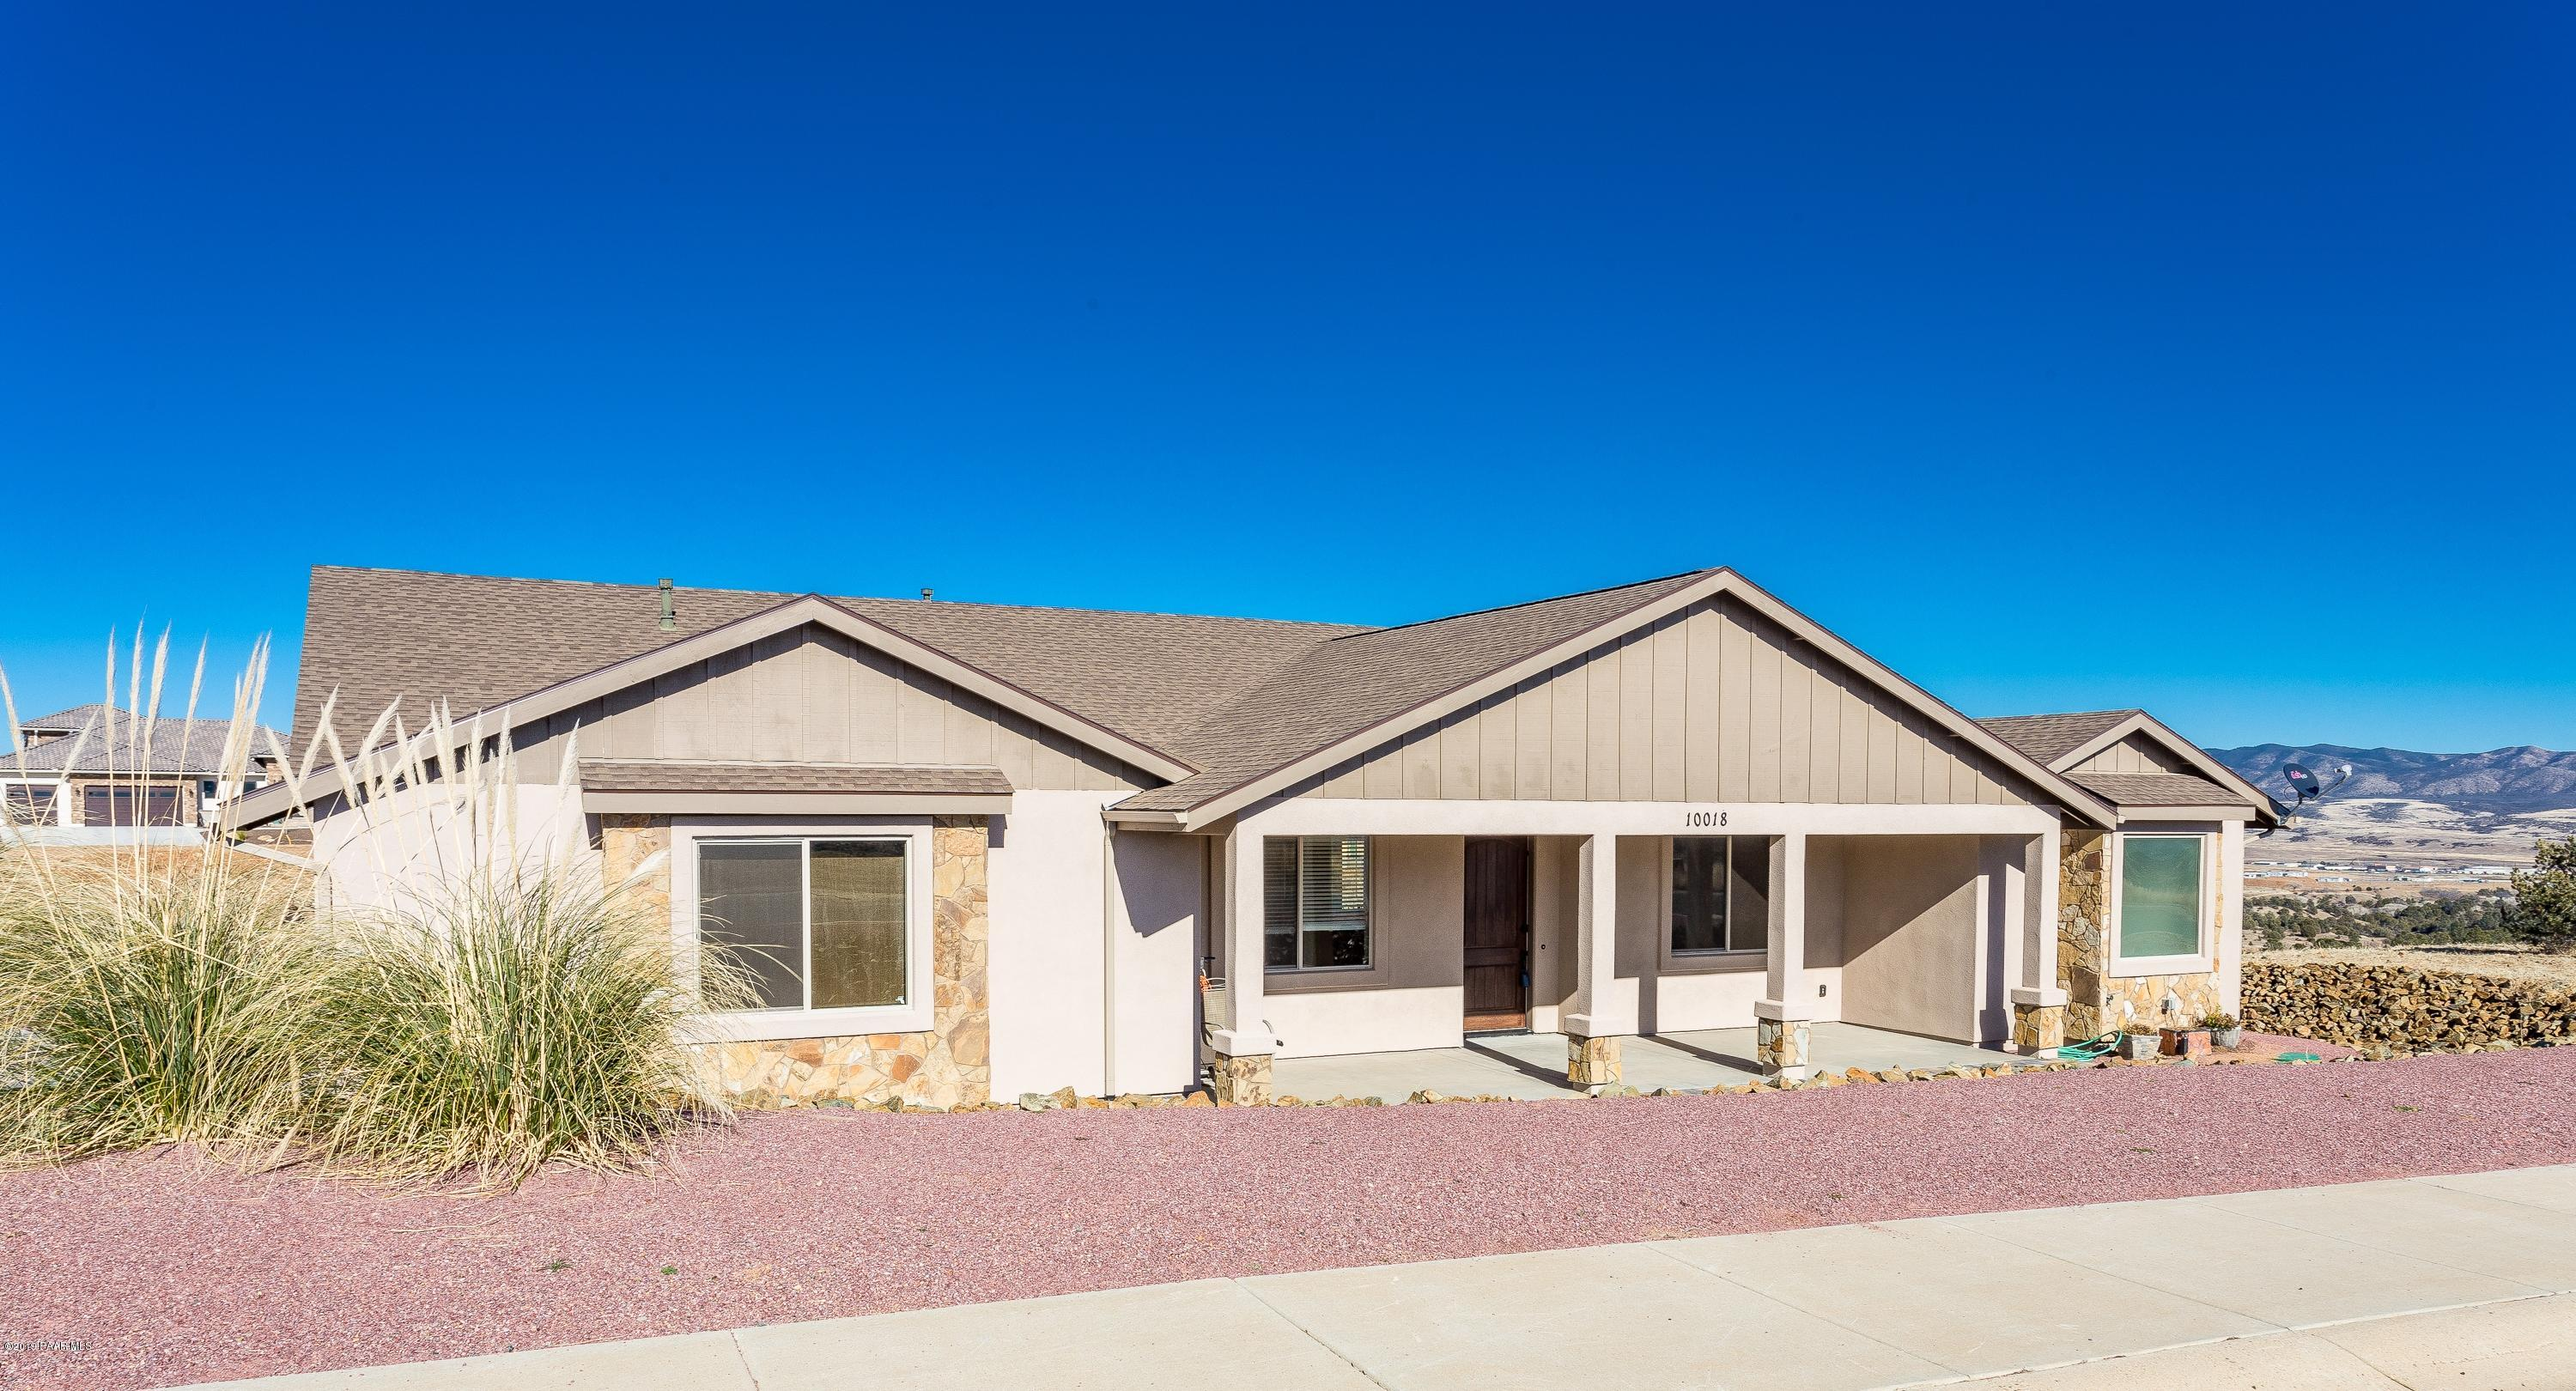 10018 E Old Black Canyon Highway, Prescott Valley Az 86327